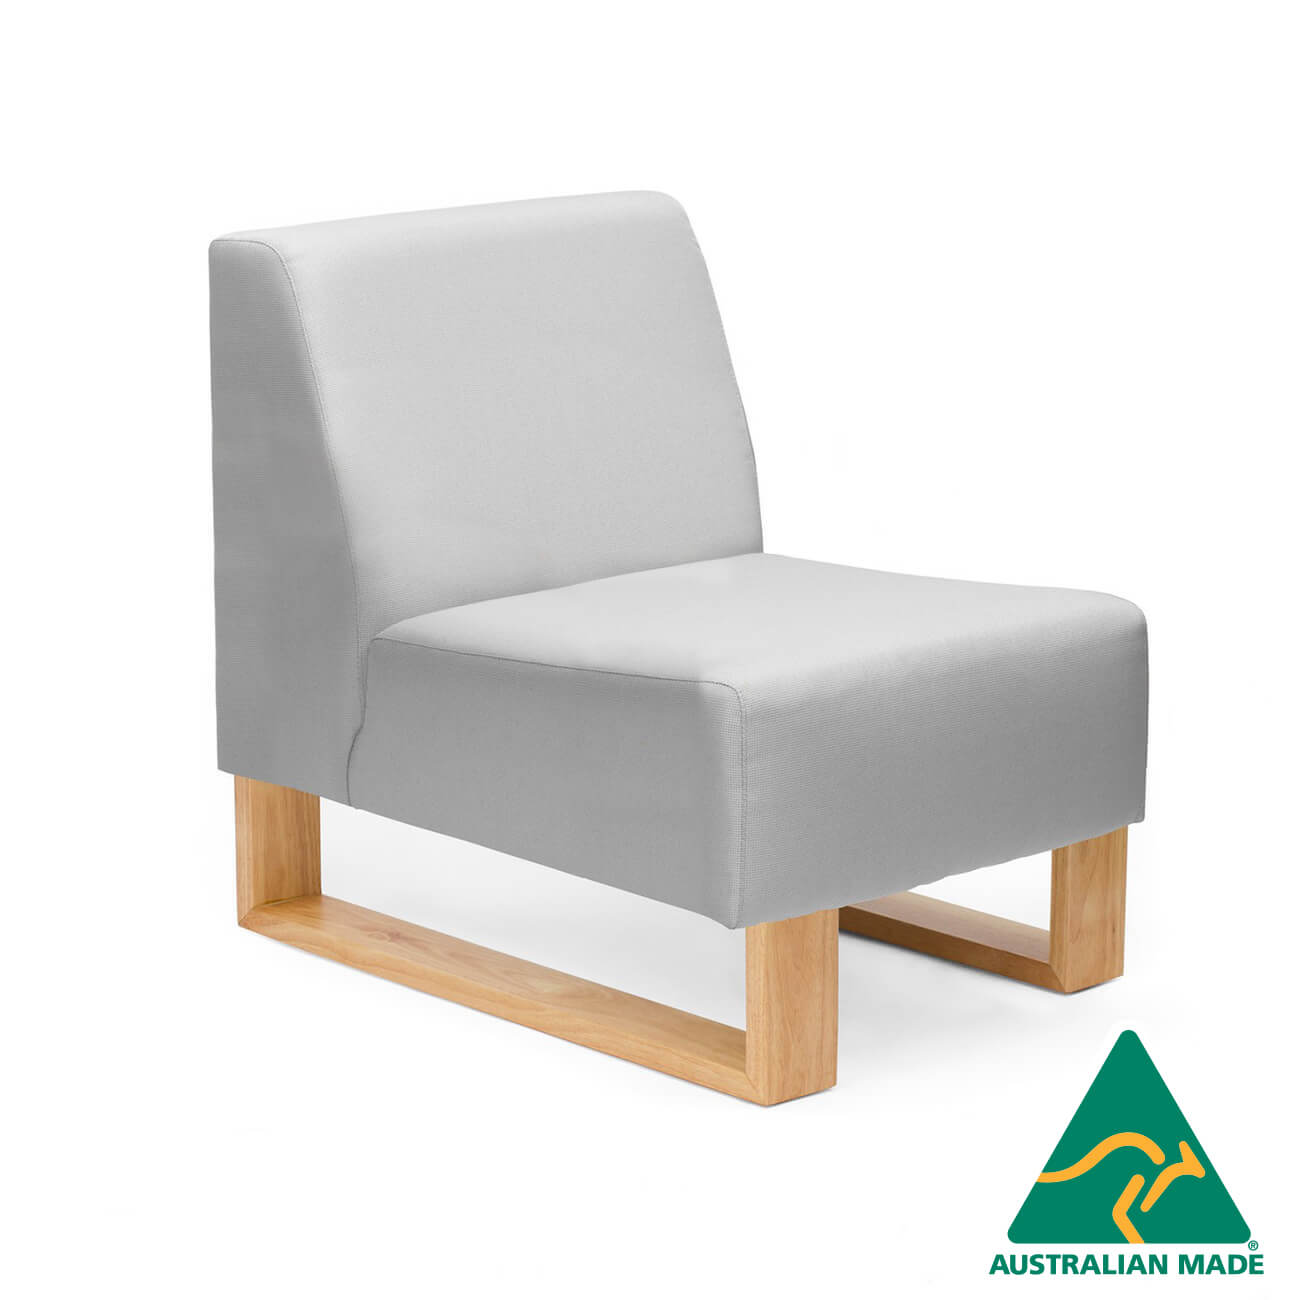 Highway single seater sofa with timber sled base